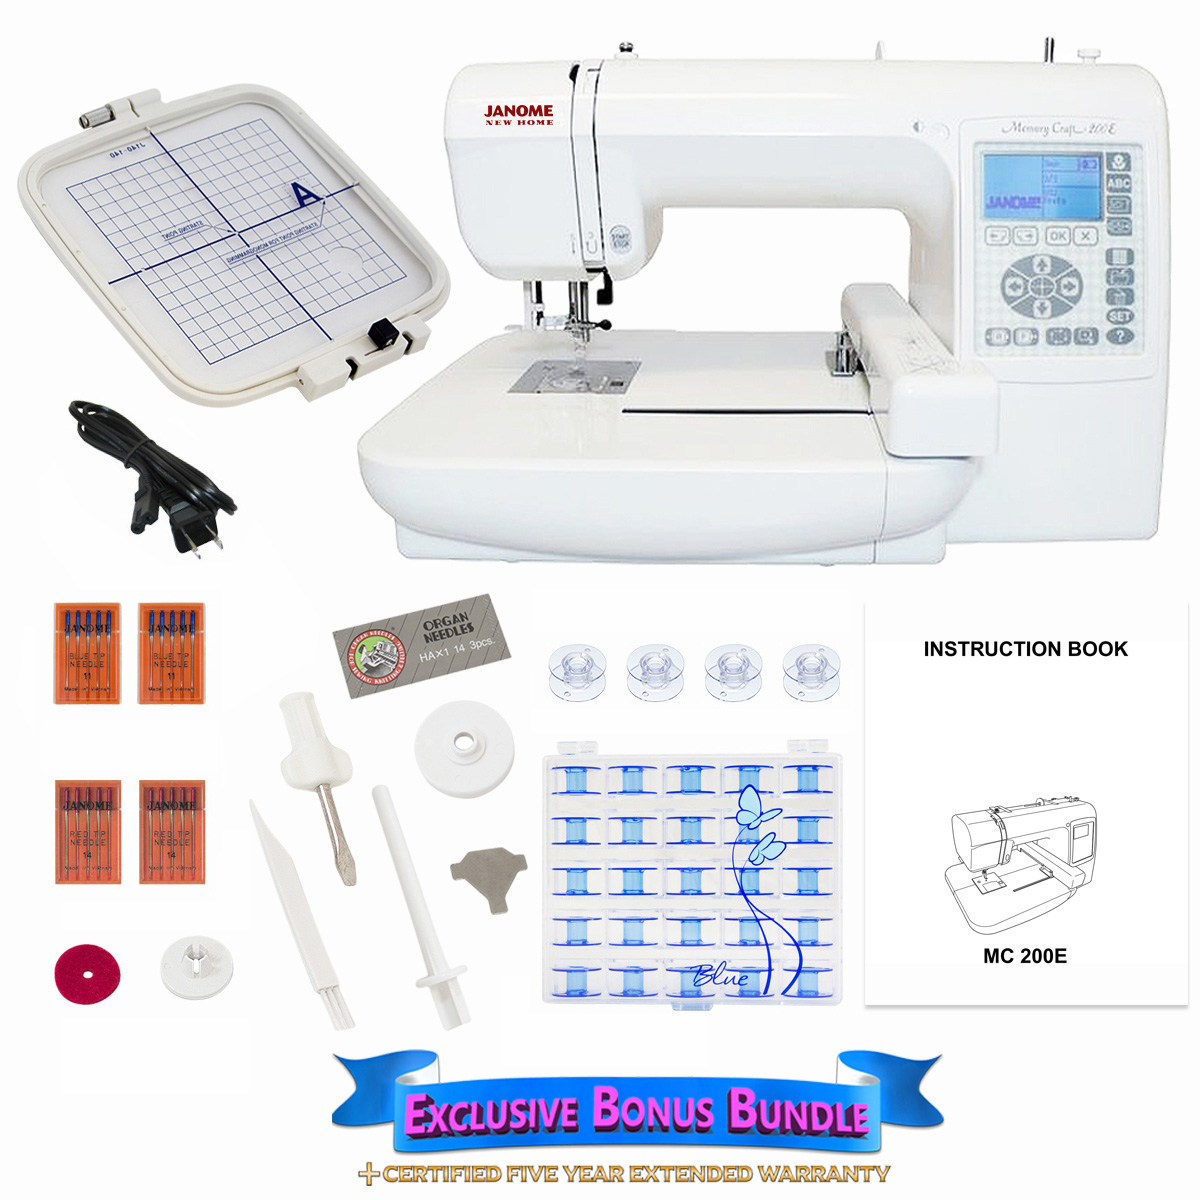 Janome memory craft 9000 - Janome Memory Craft 200e Embroidery Machine Includes Exclusive